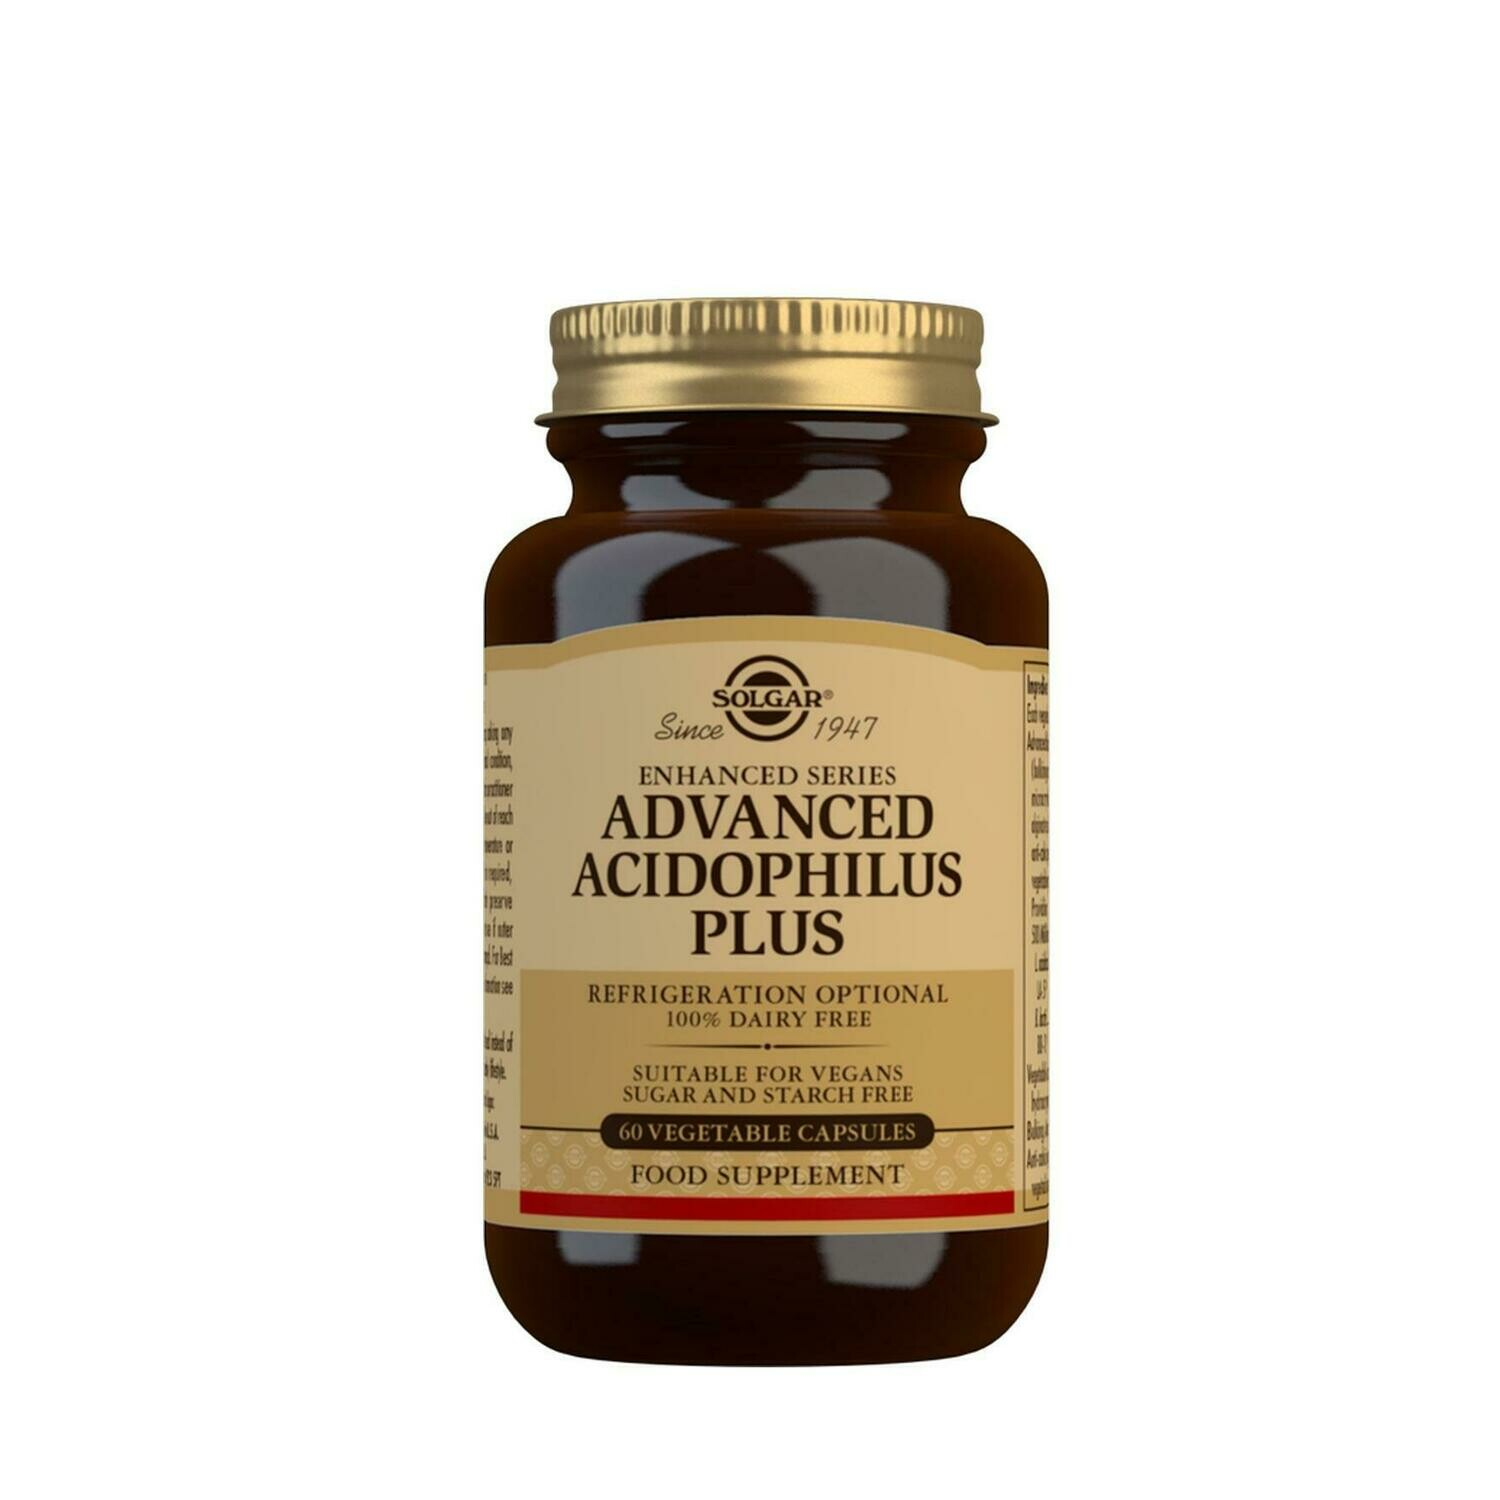 SOLGAR ACIDOPHILUS PLUS AVANCED 60 CAPSULAS